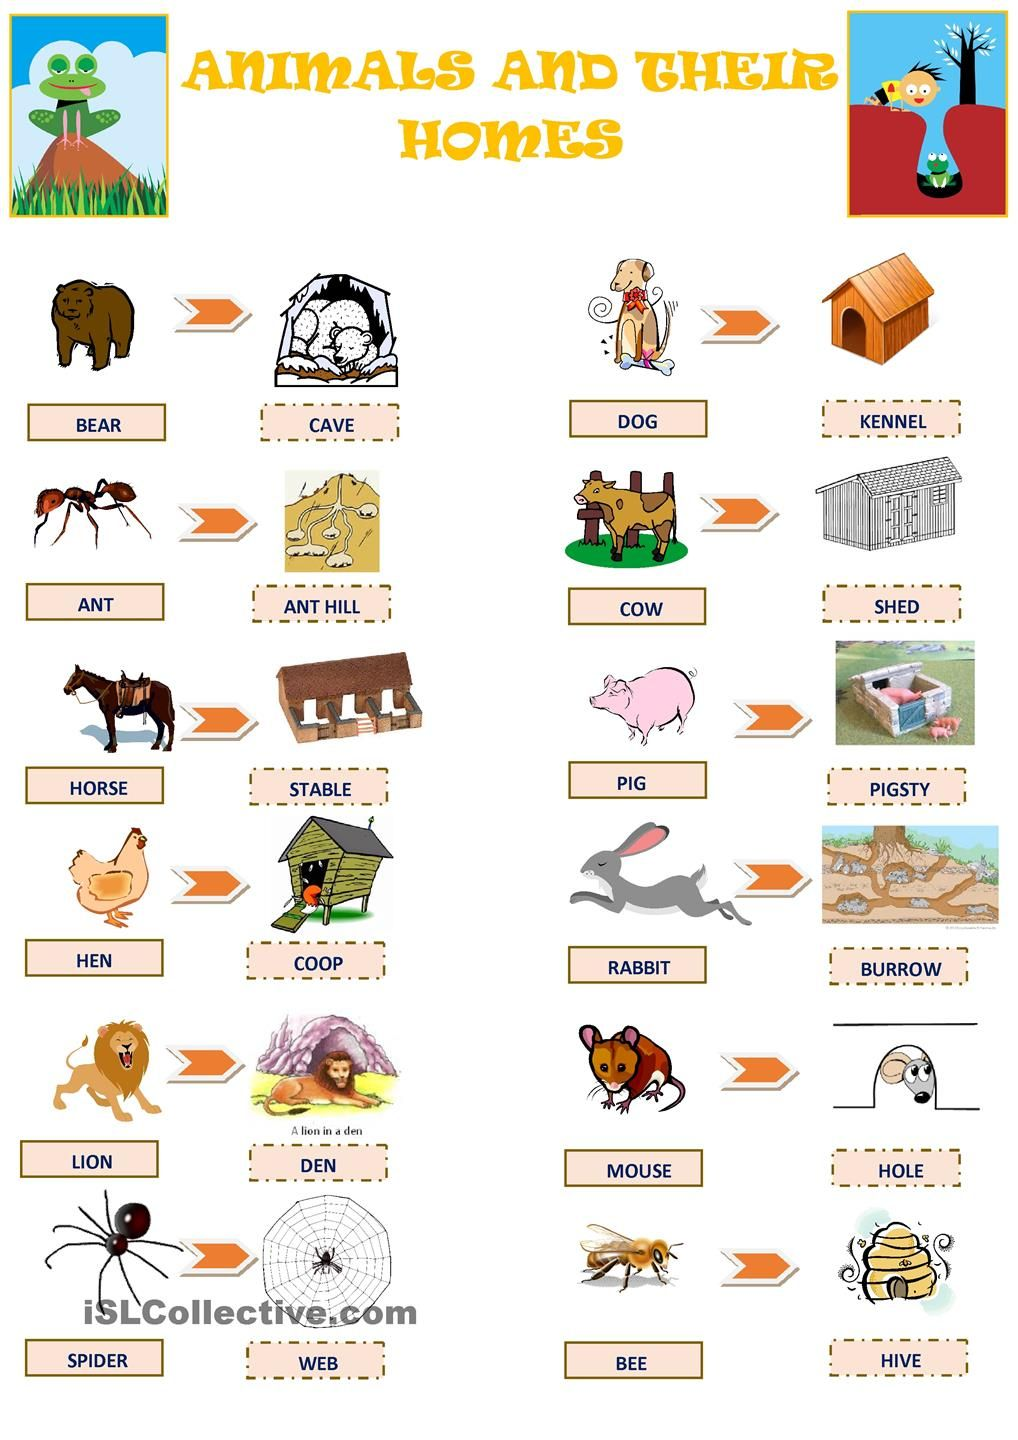 worksheet Homes Of Animals Worksheets For Kids animals and their homes pinterest worksheet free esl printable worksheets made by teachers